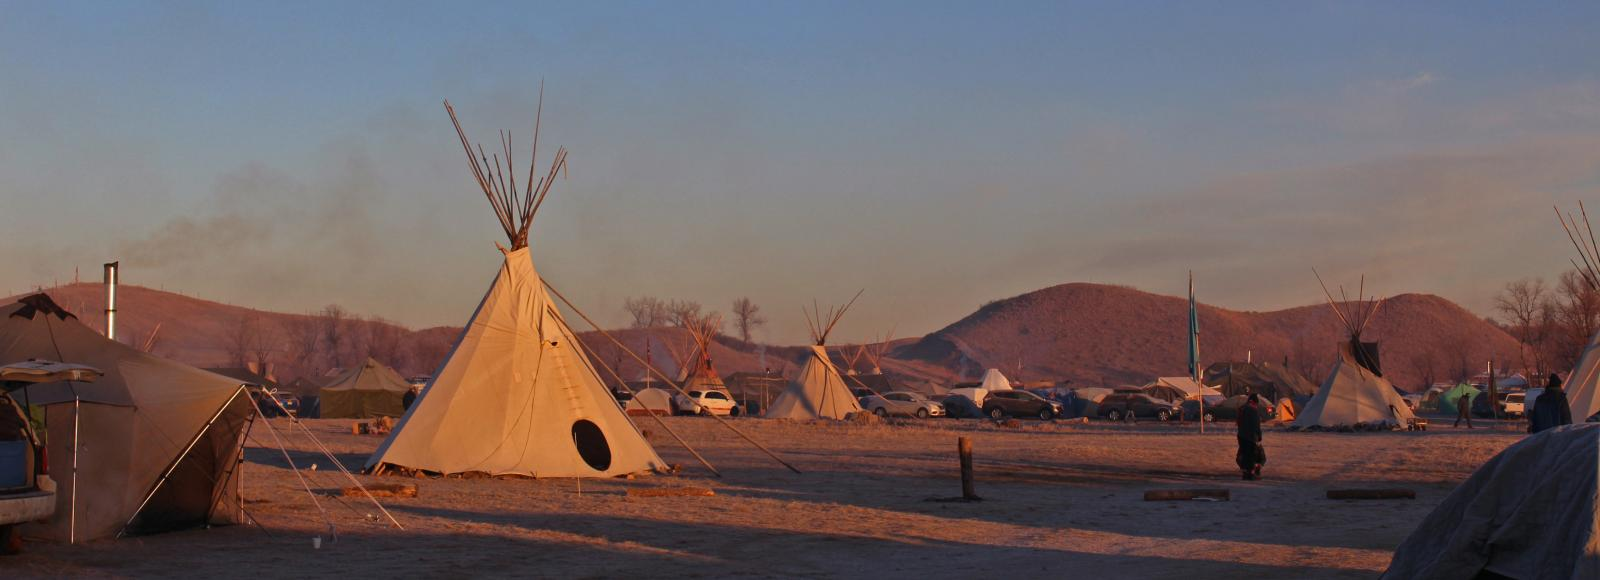 sunrise at standing rock, single teepee